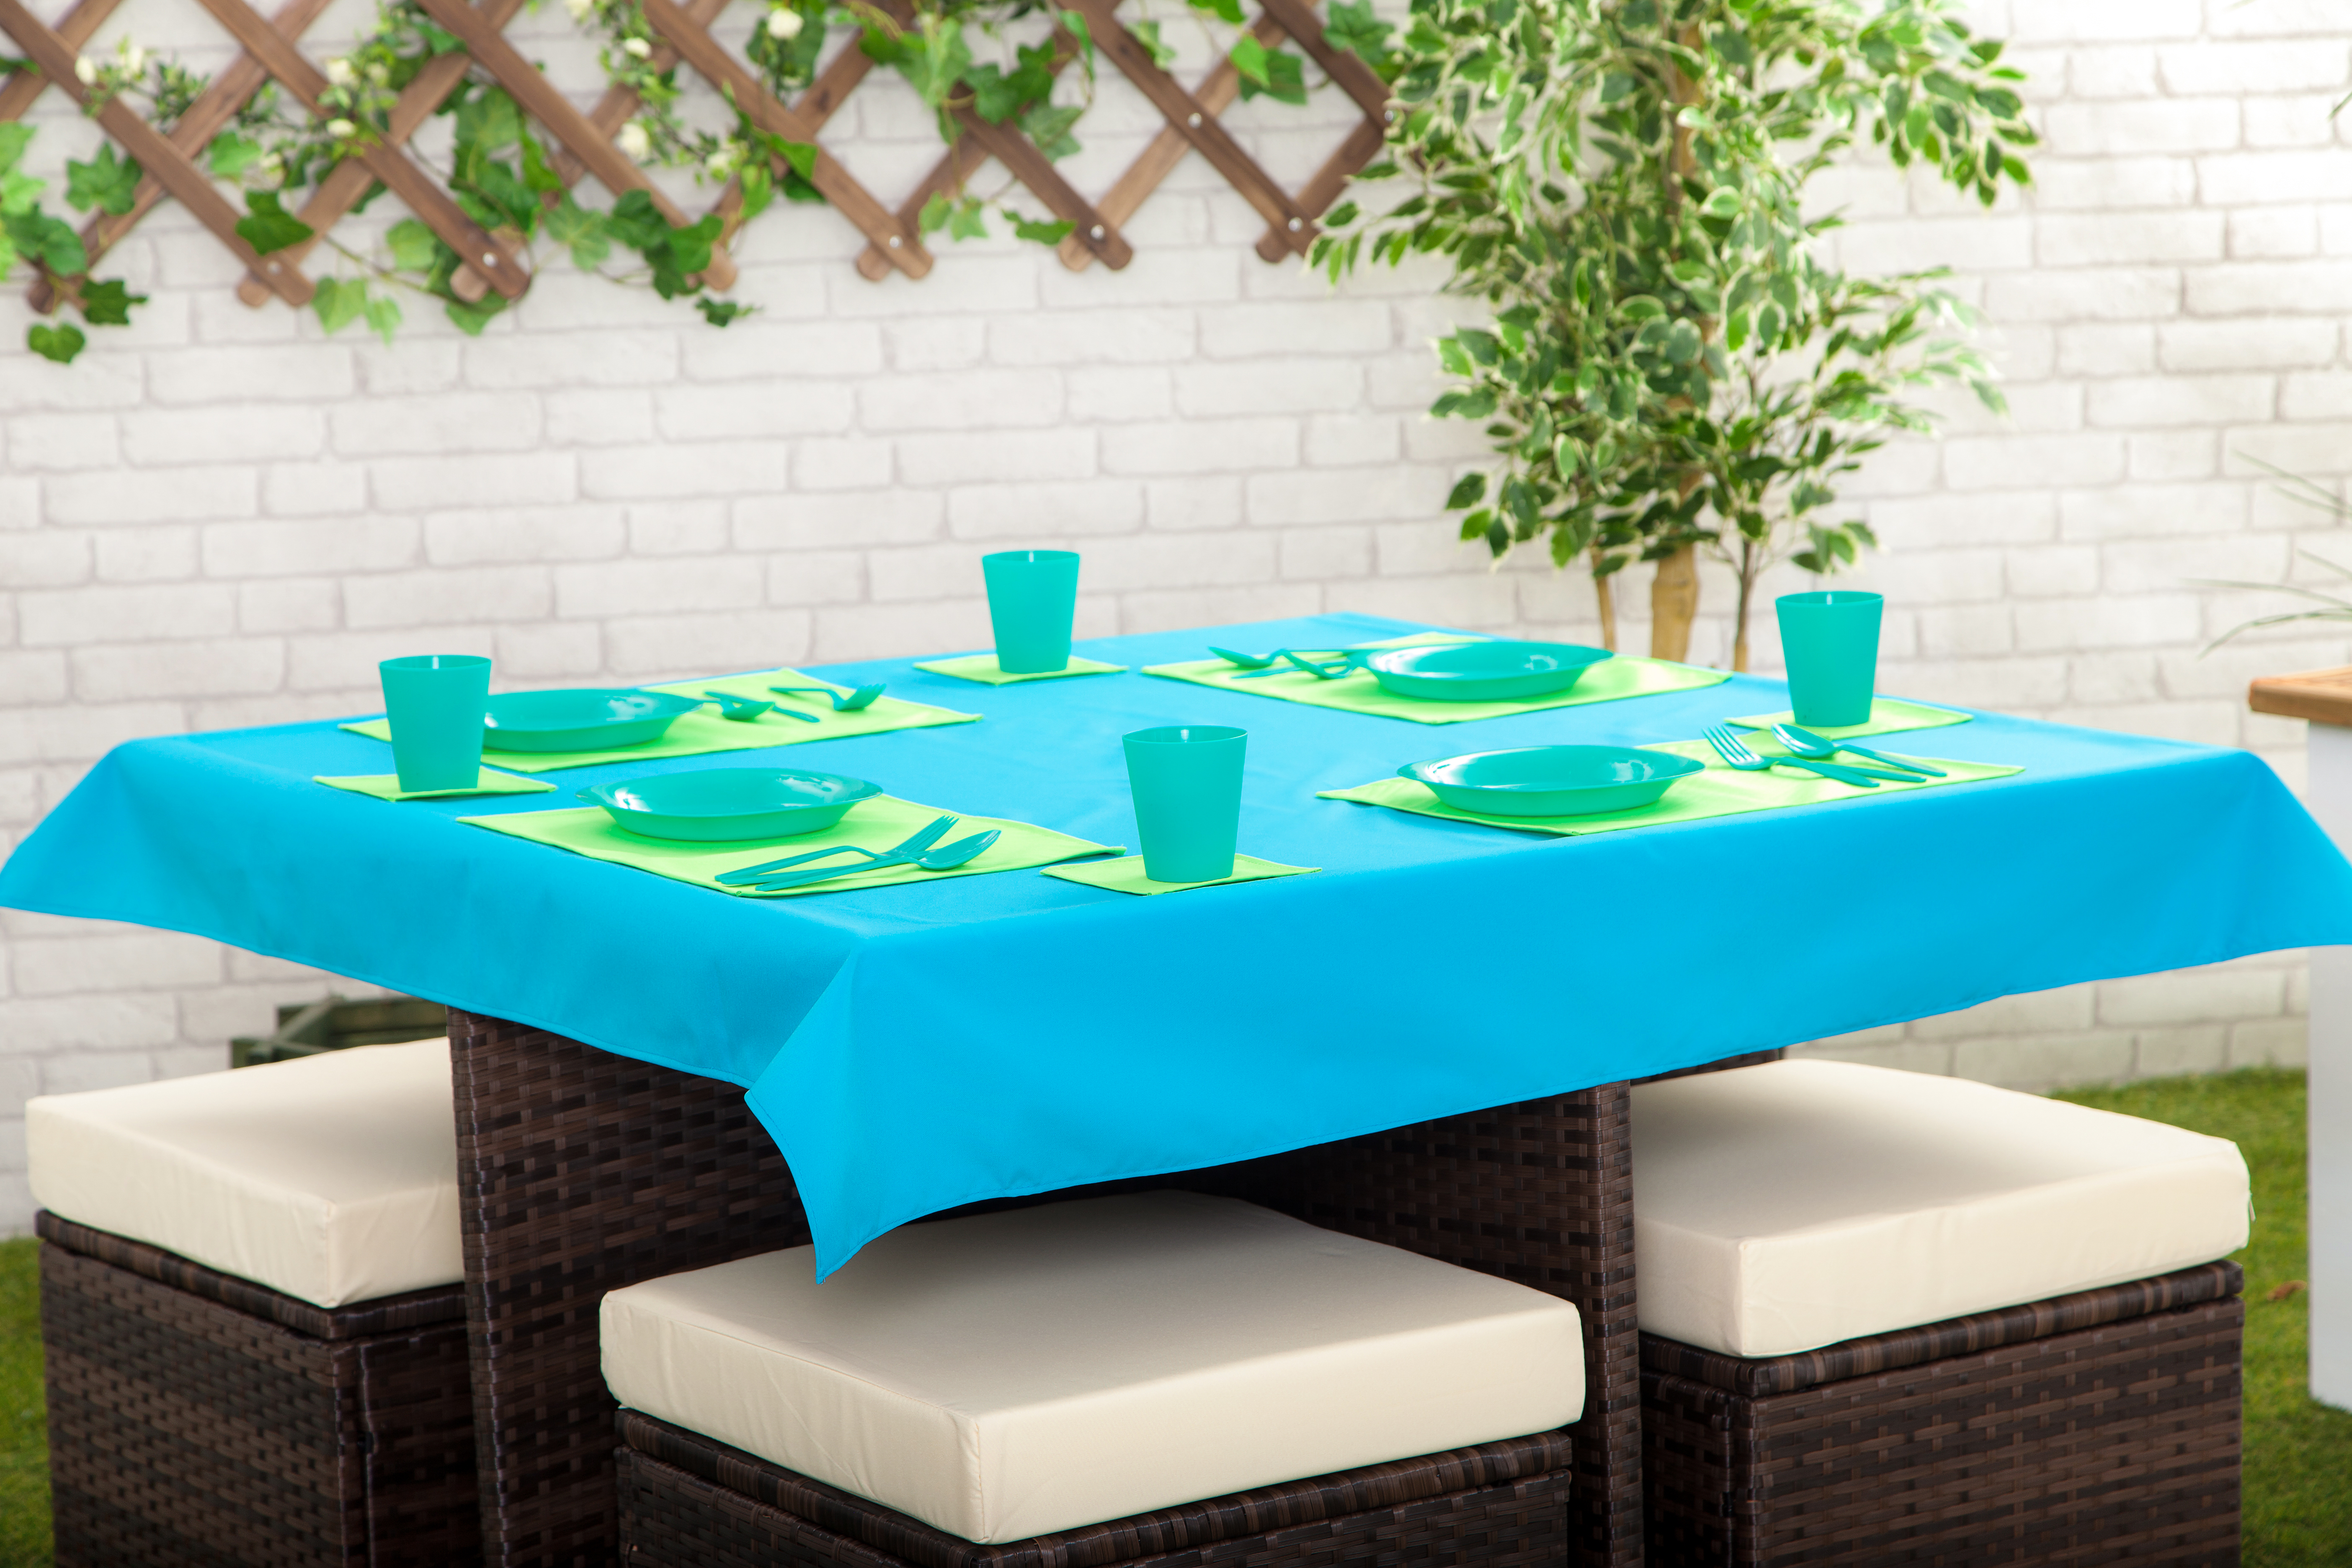 Details about Outdoor Waterproof Garden Dining Table Cloths Place Mats  Coasters Collection